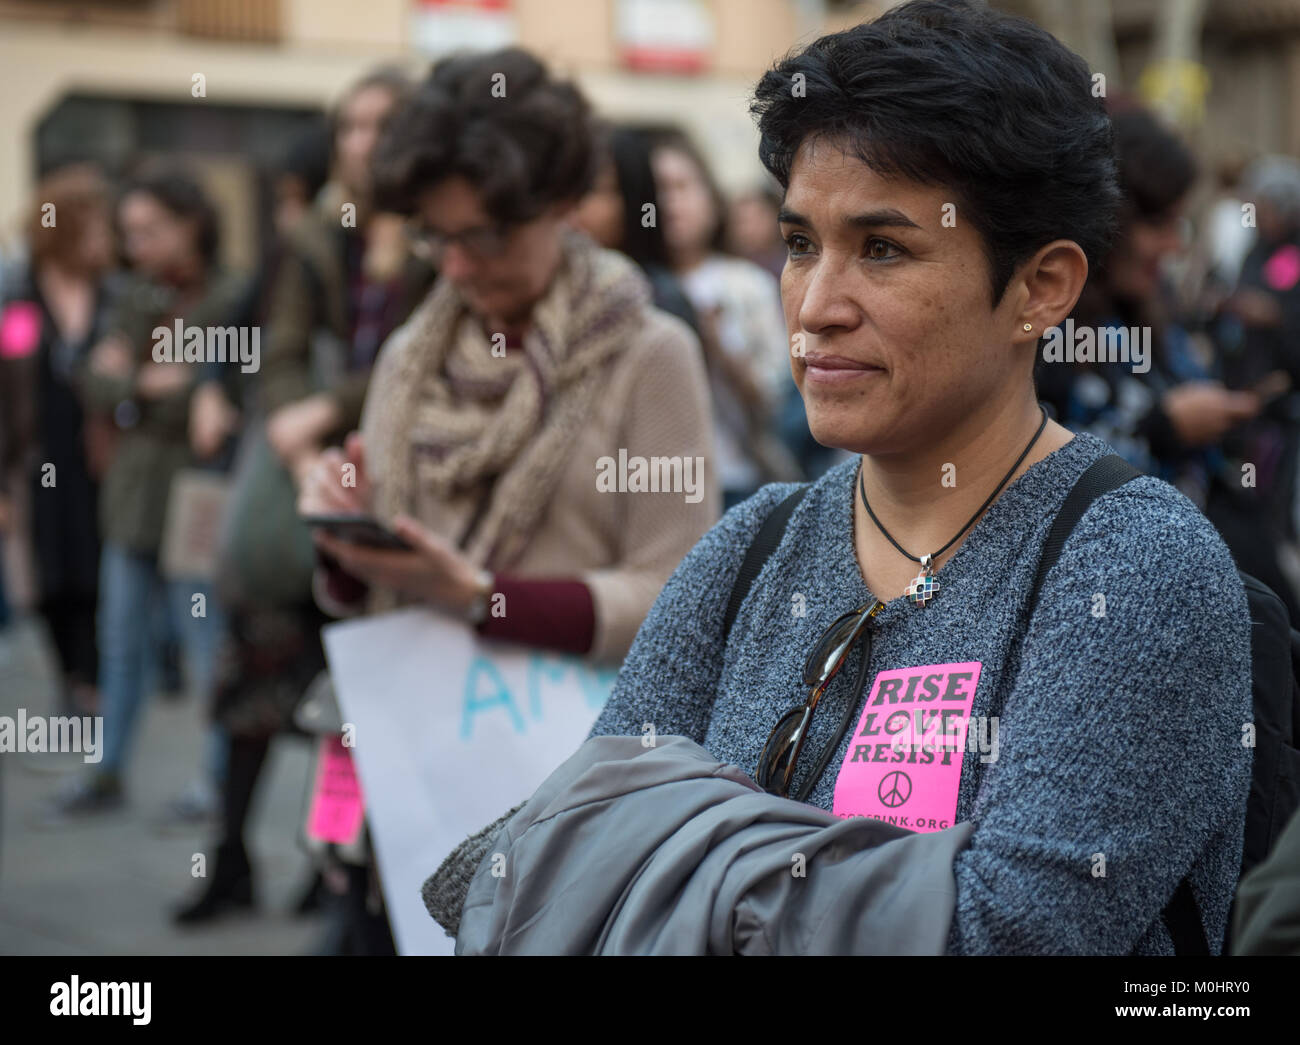 Women´s March in Barcelona, womens march BCN, Rise Love, resist peace, pink sticker, codepink - Stock Image